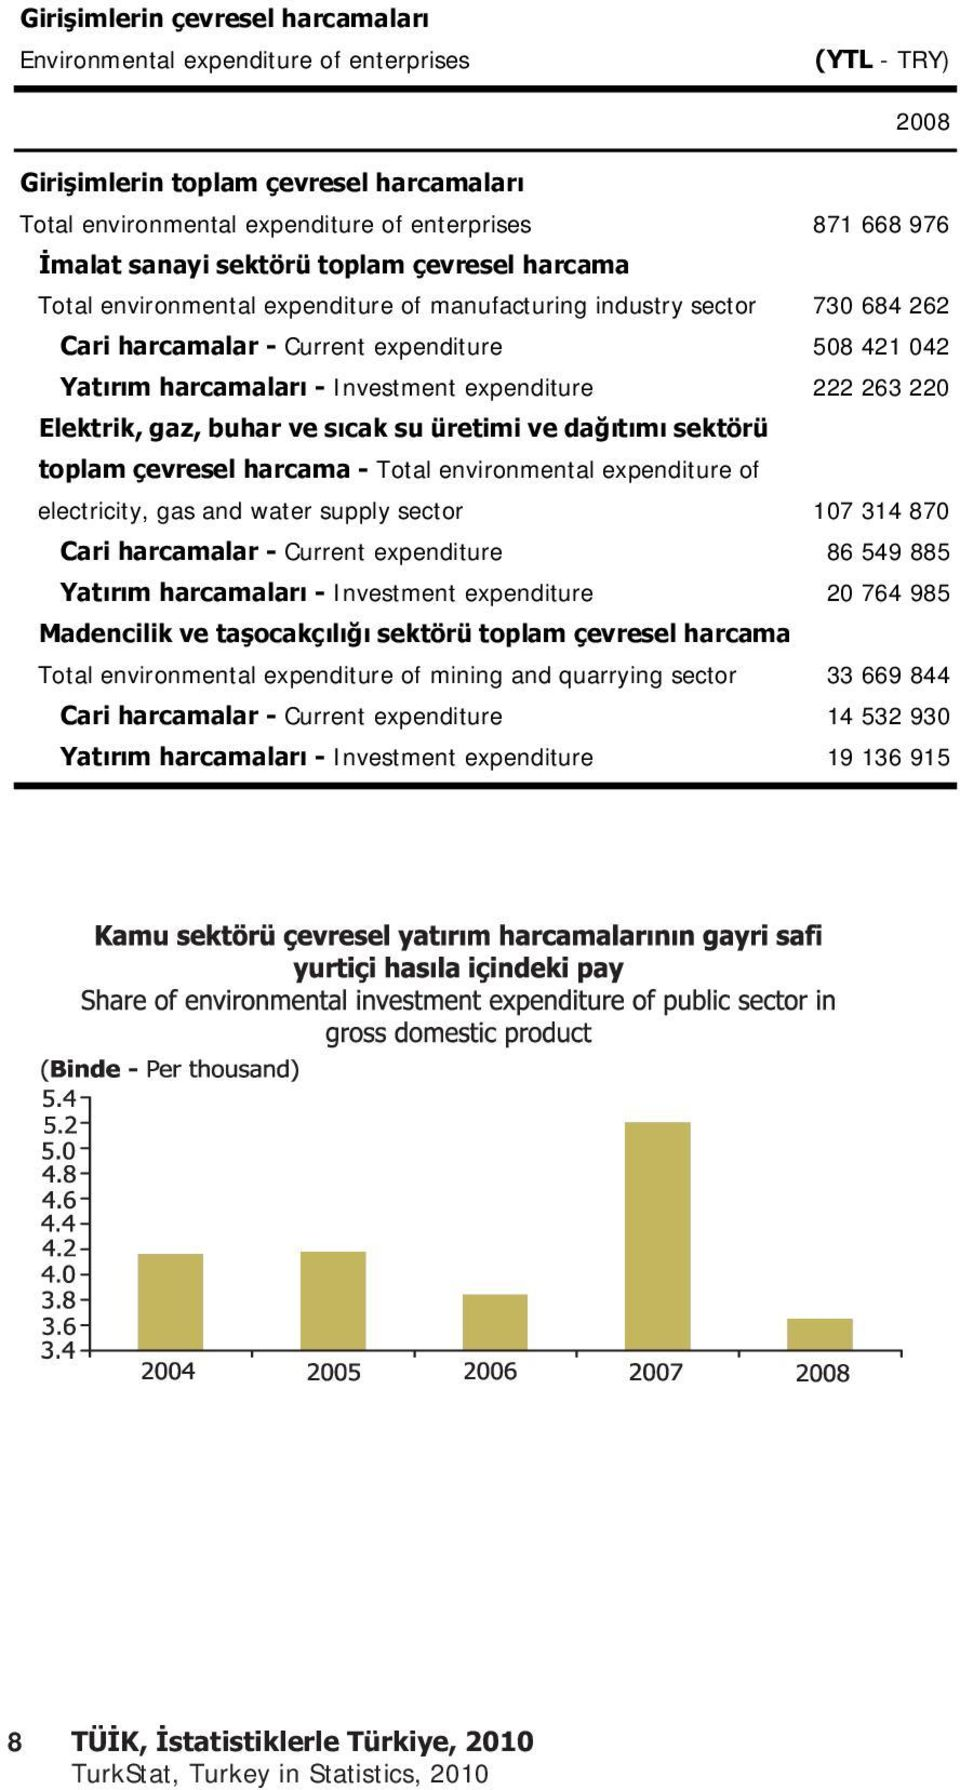 expenditure 222 263 220 Elektrik, gaz, buhar ve s cak su üretimi ve da t m sektörü toplam çevresel harcama - Total environmental expenditure of electricity, gas and water supply sector 107 314 870